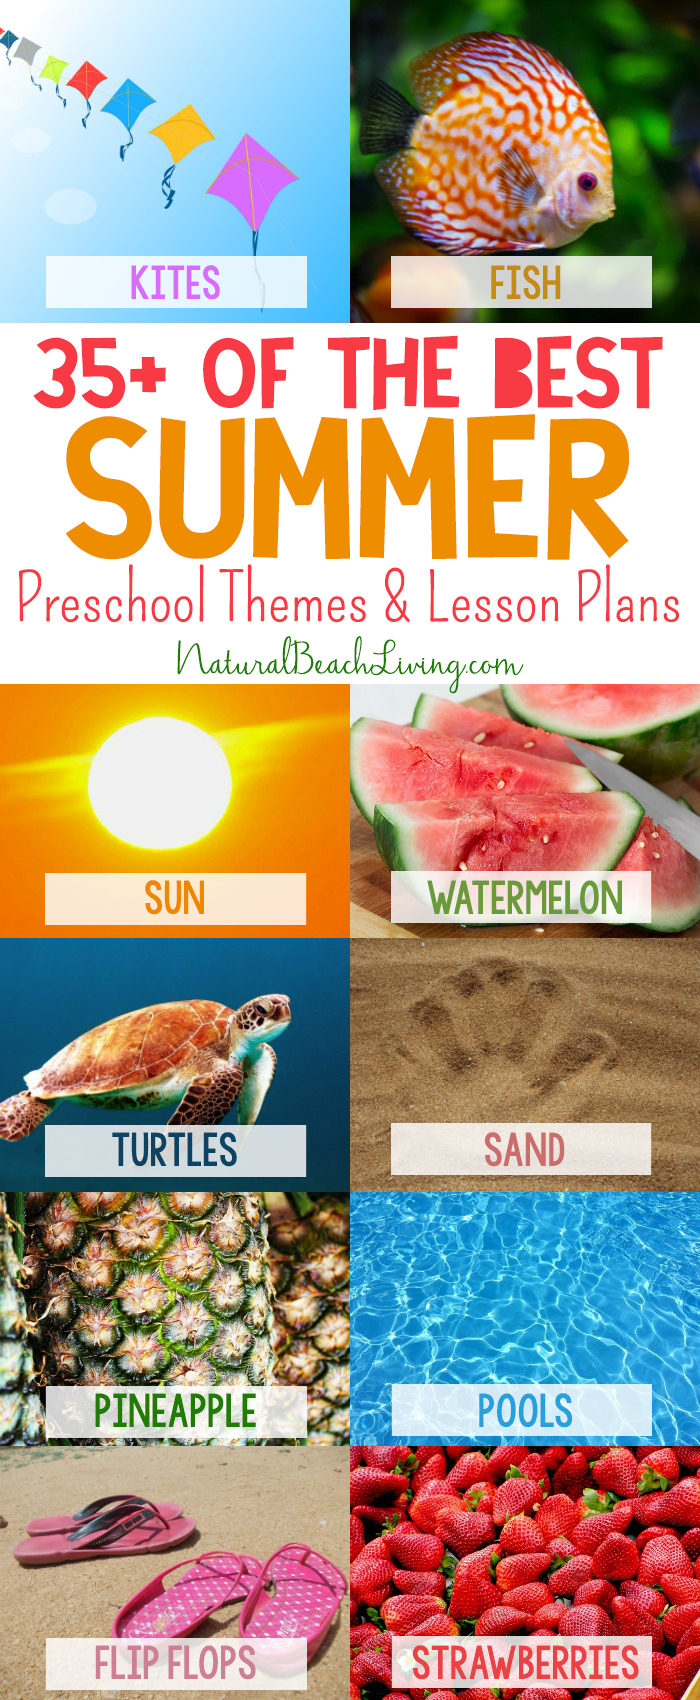 35+ Best Summer Preschool Themes and Activities